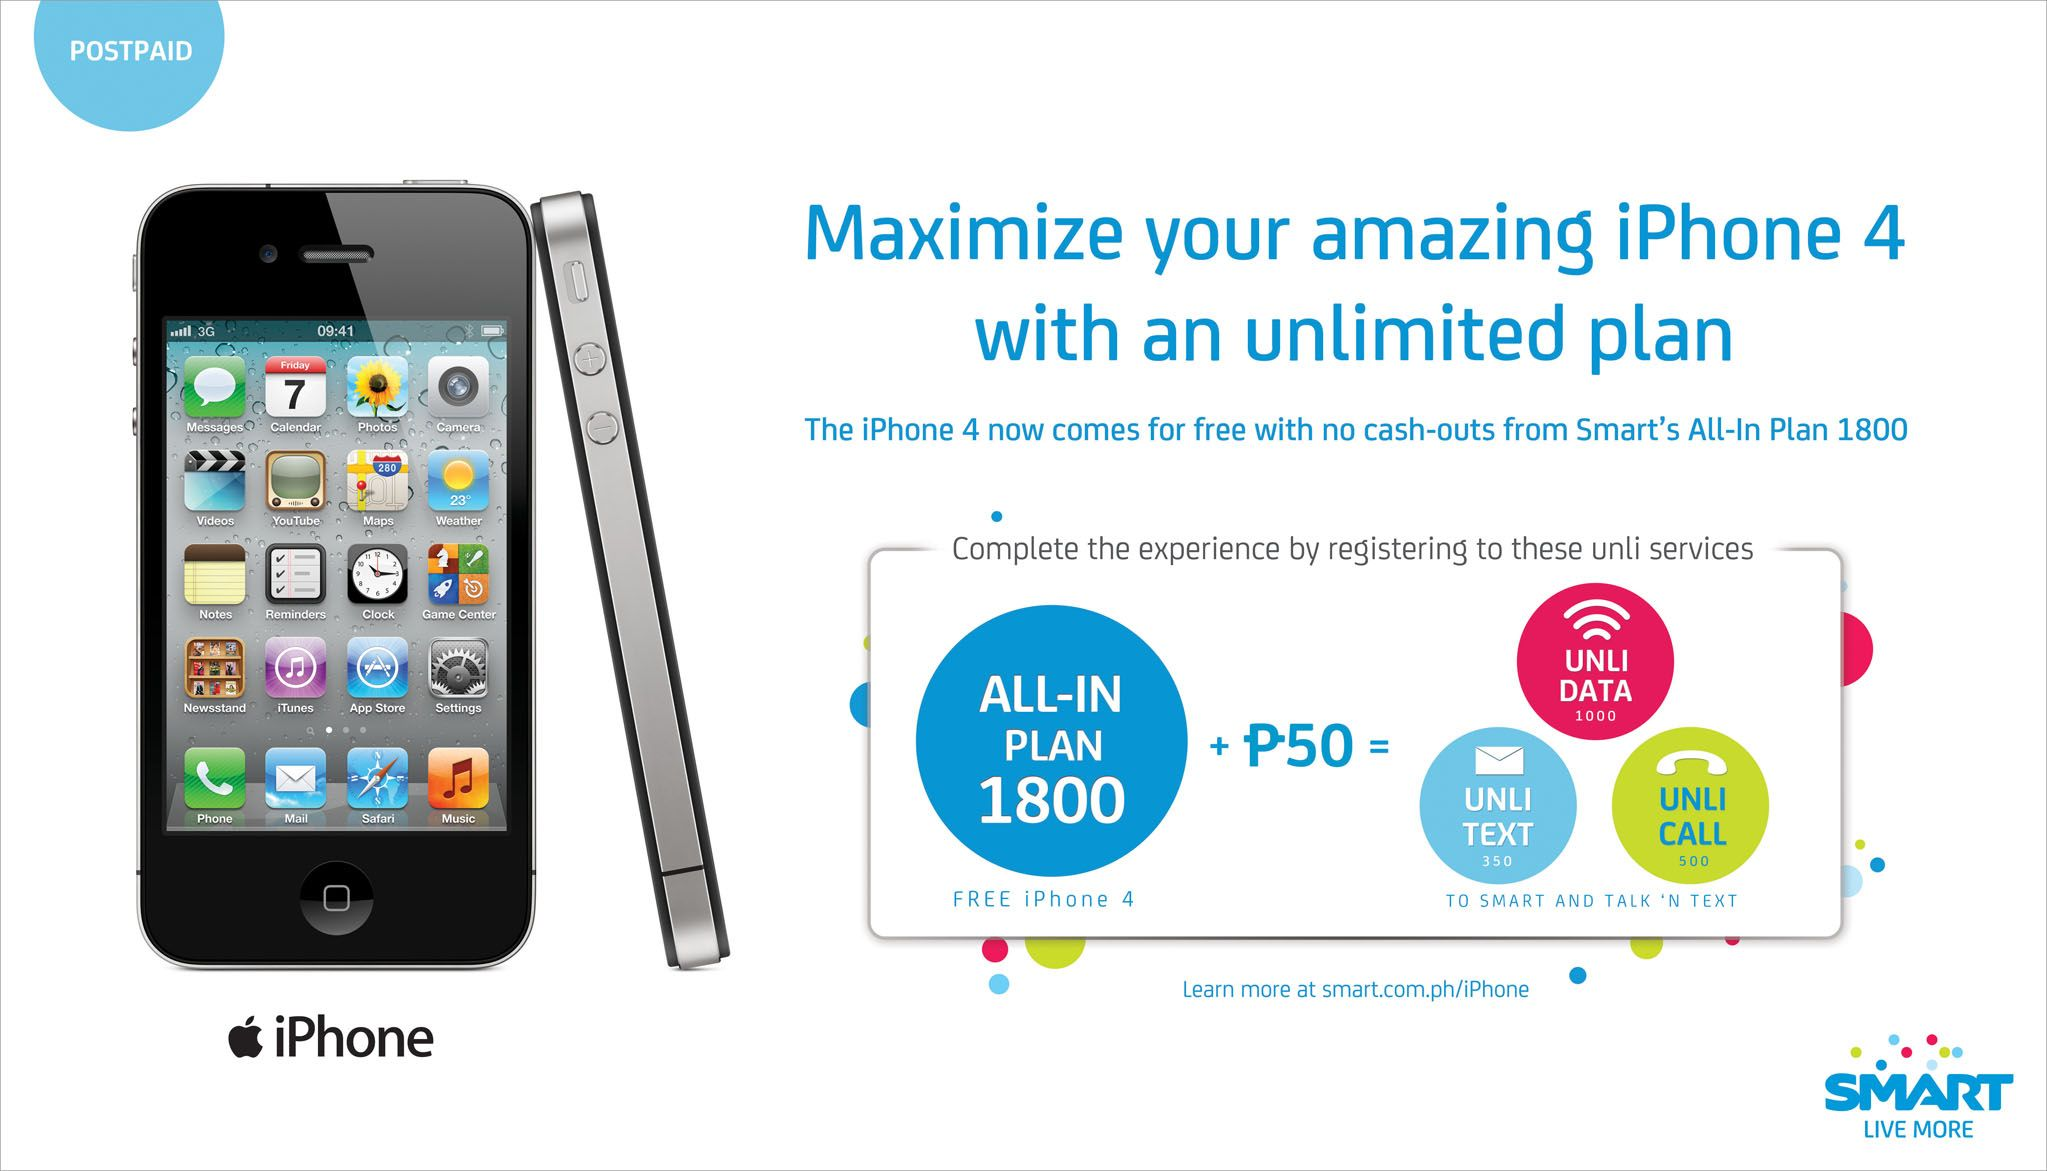 The iPhone 4 is now FREE at Smart All in Plan 1800 Maximize it by registering it to Unli Data Unli Call & Unli SMS services